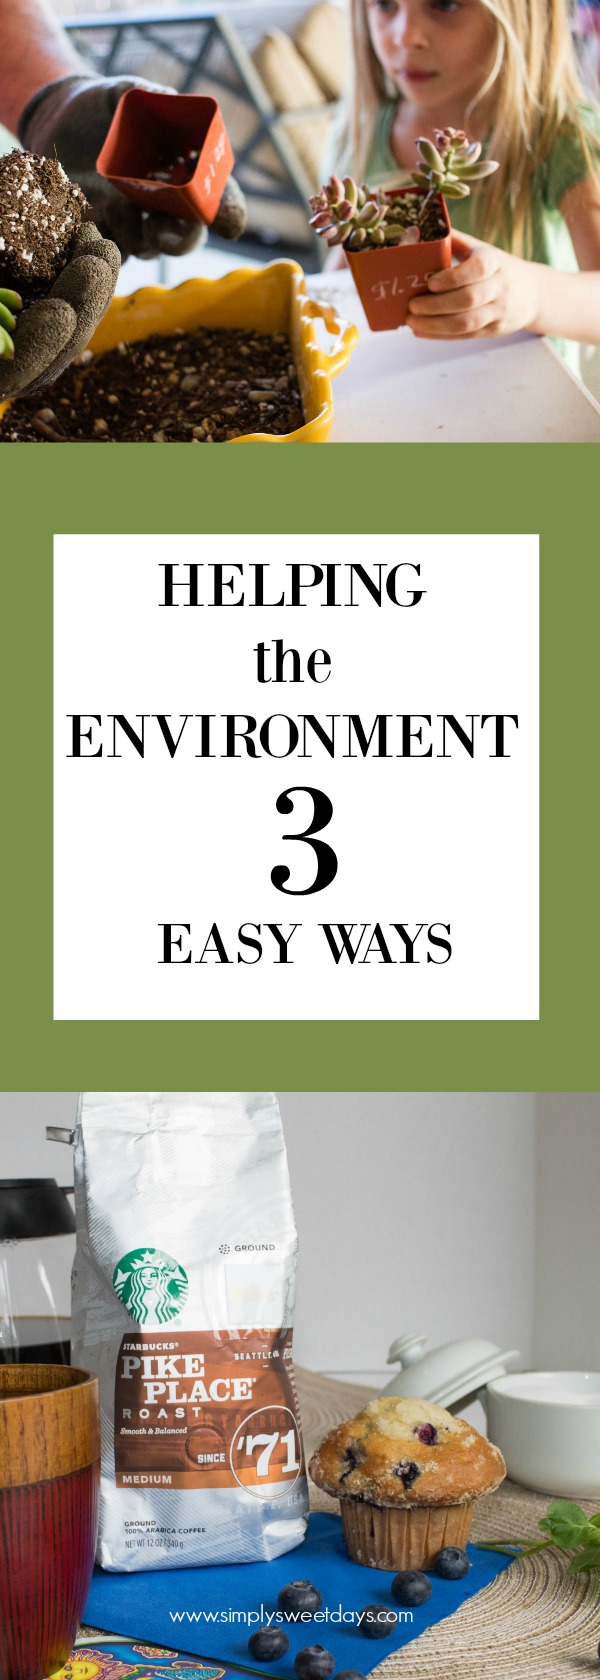 Want to help your kids take care of the environment but there's not enough time? Check out these 3 easy ways to help the environment. They're budget-friendly too!